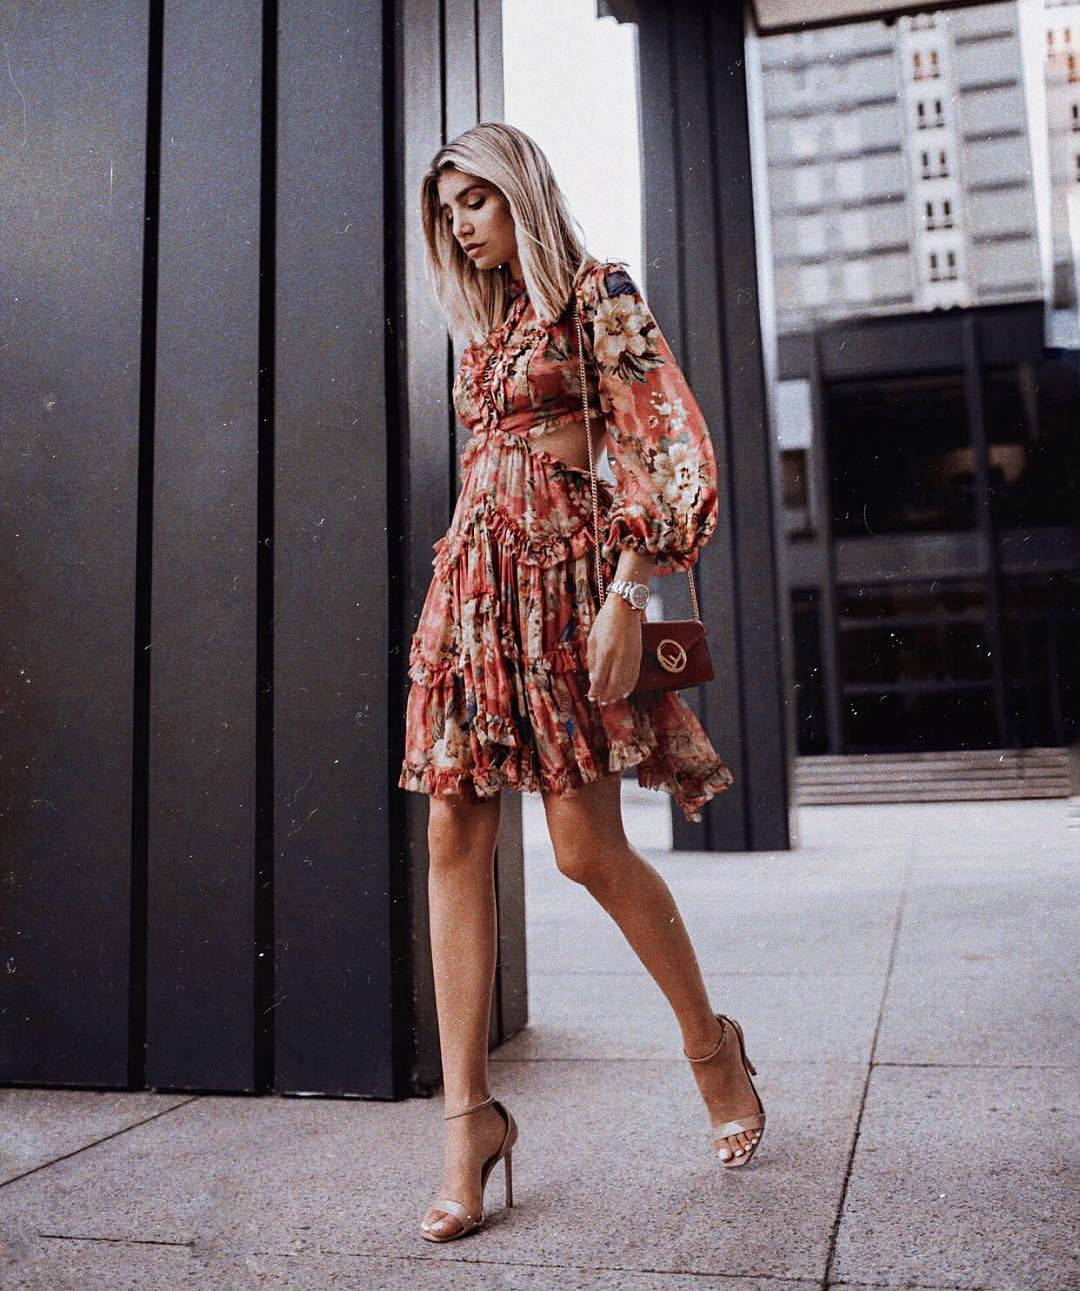 Floral Boho Dress With Side Cut Outs And Puff Sleeves 2021